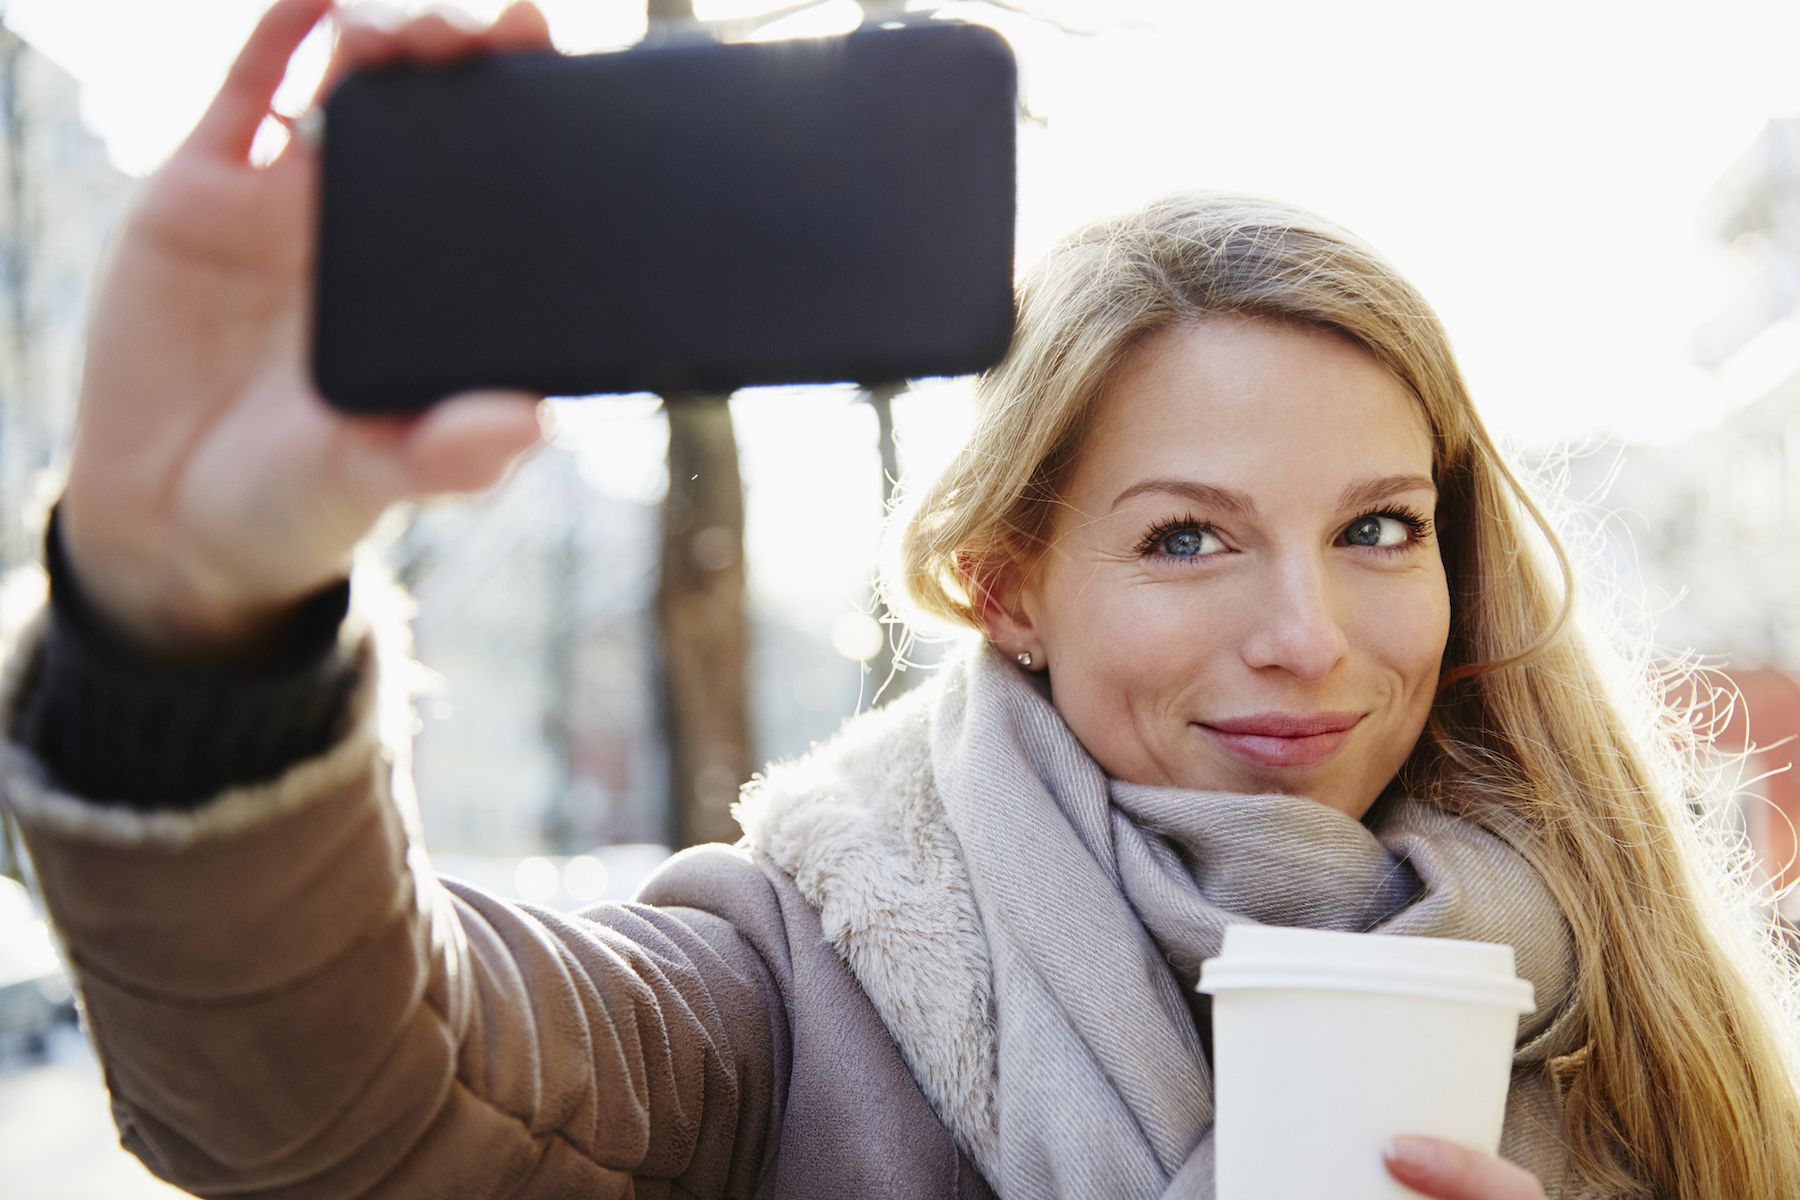 Woman Taking Selfie on smartphone